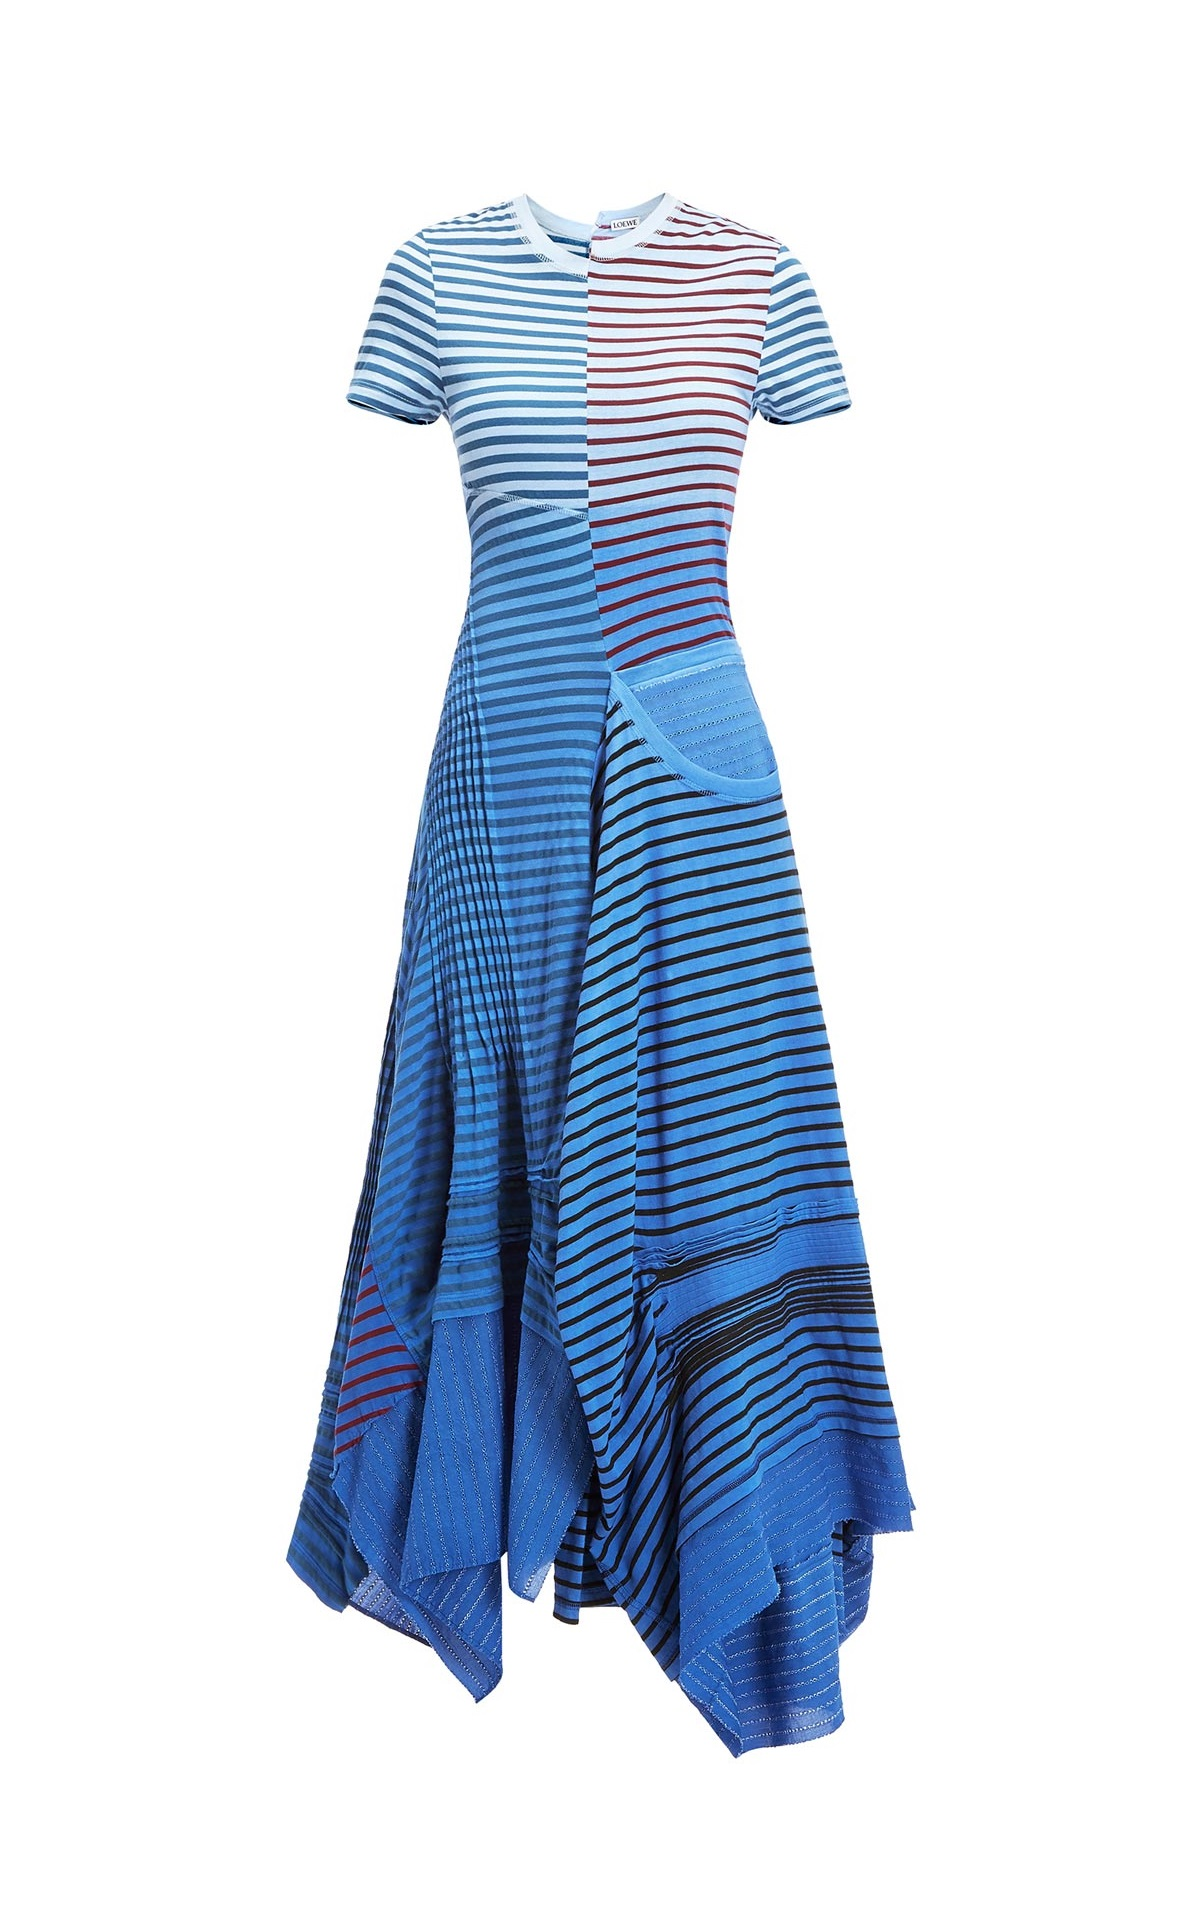 Striped blue dress Loewe